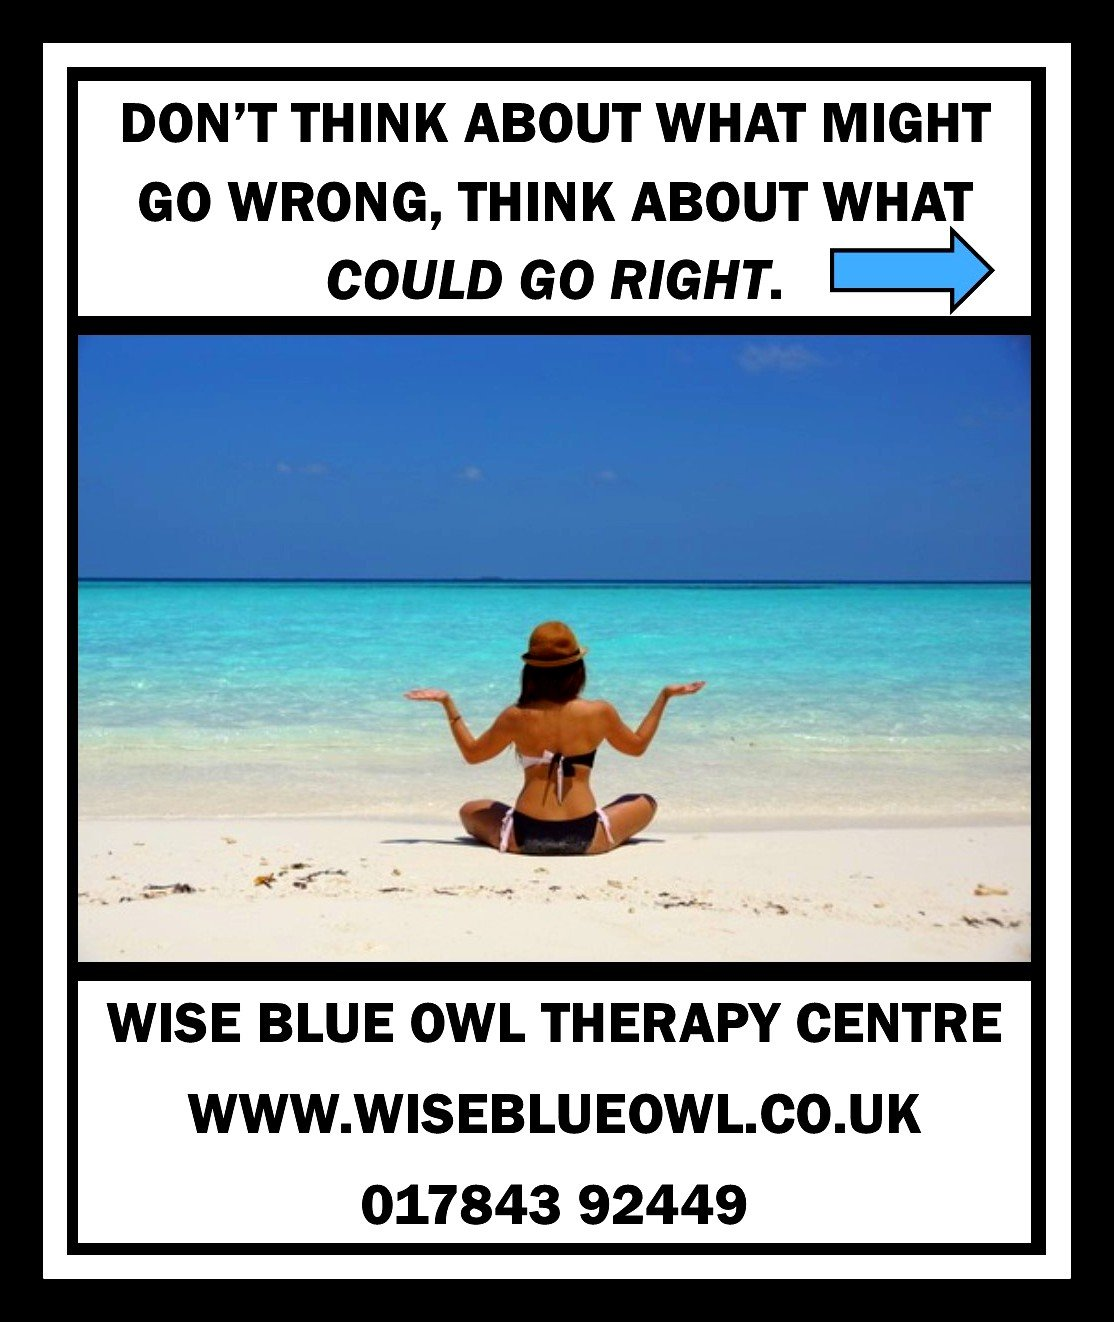 woman on a beach after having stress therapy at wise blue owl therapy centre